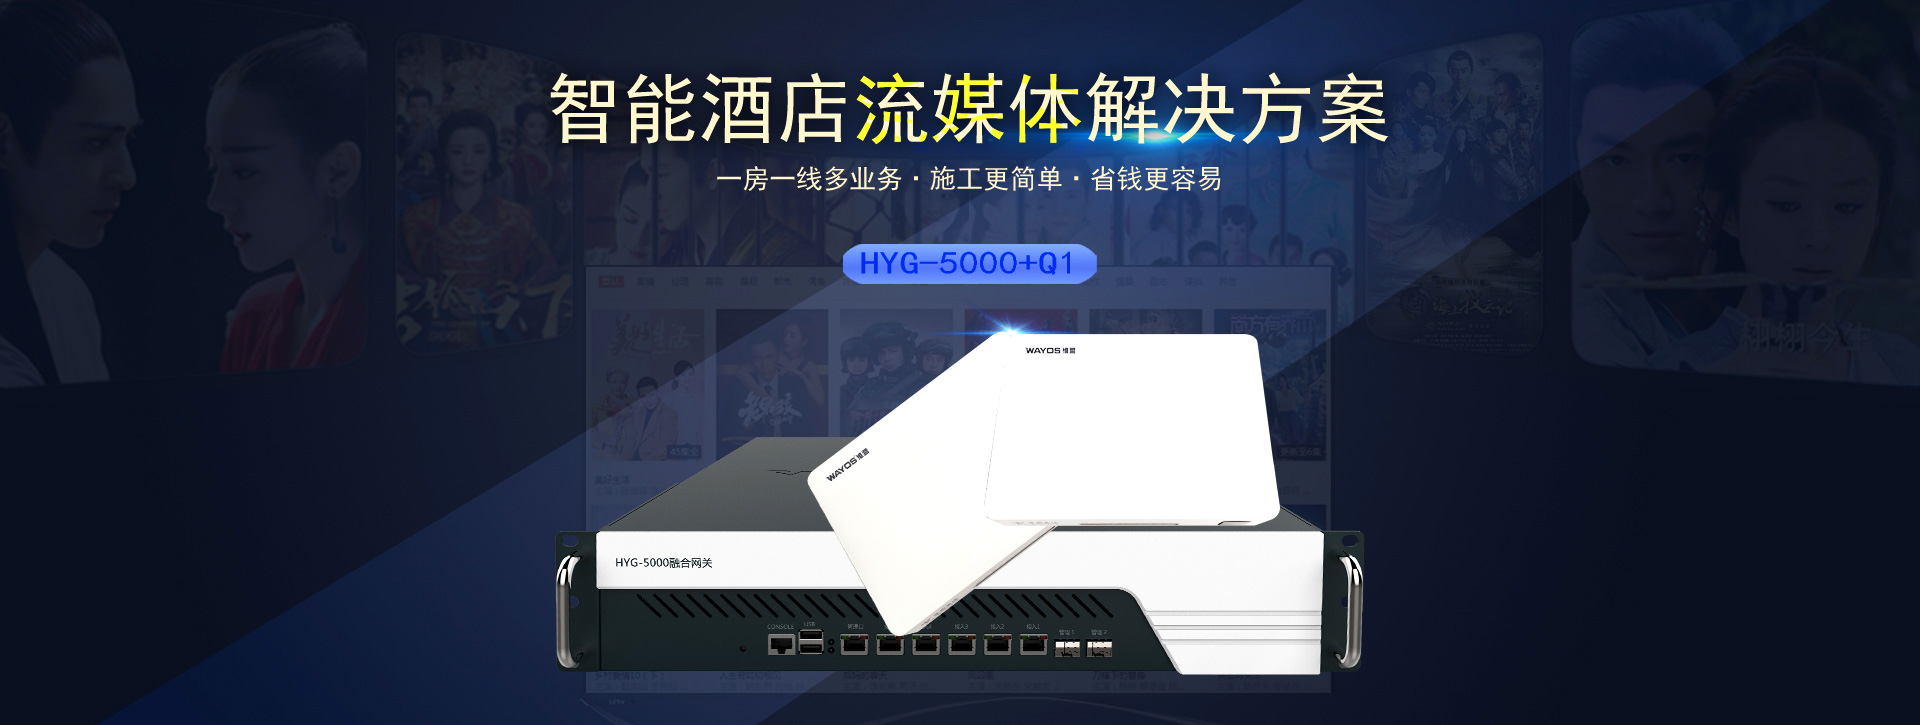 ShenZhen Wayos Technology Co.,LTD